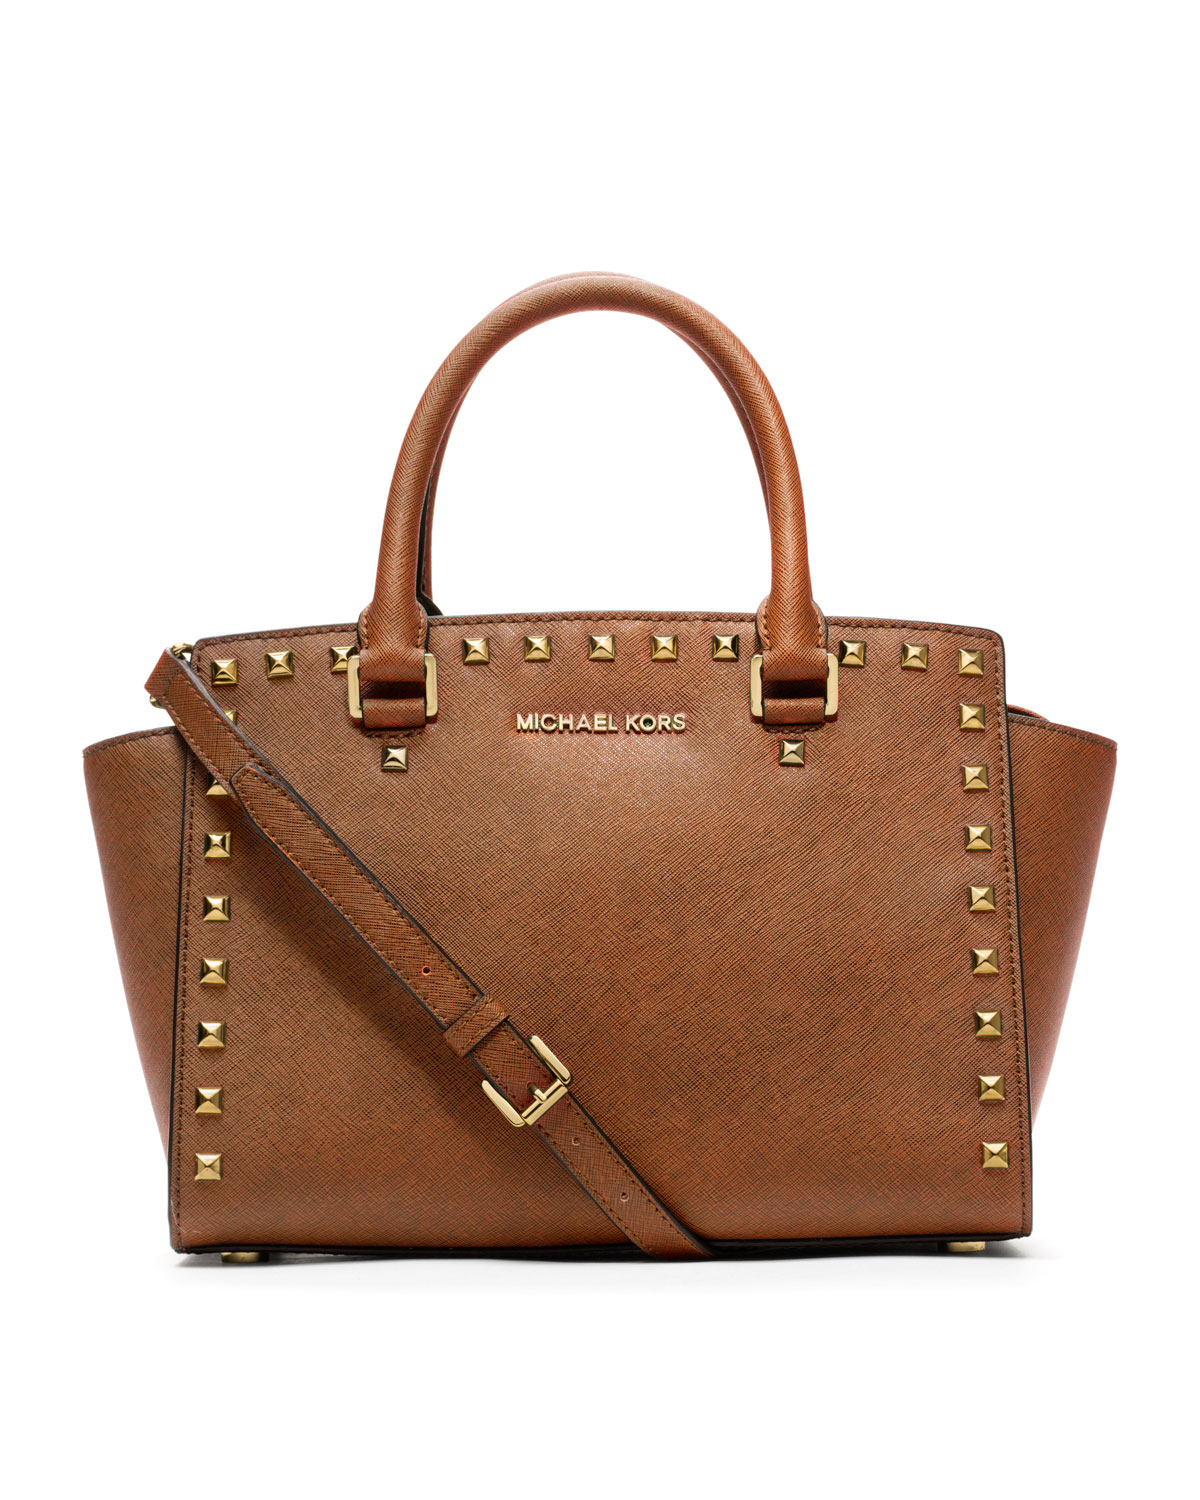 d3341f616907 Michael Michael Kors Medium Selma Studded Saffiano Tote in Brown (LUGGAGE)  | Lyst